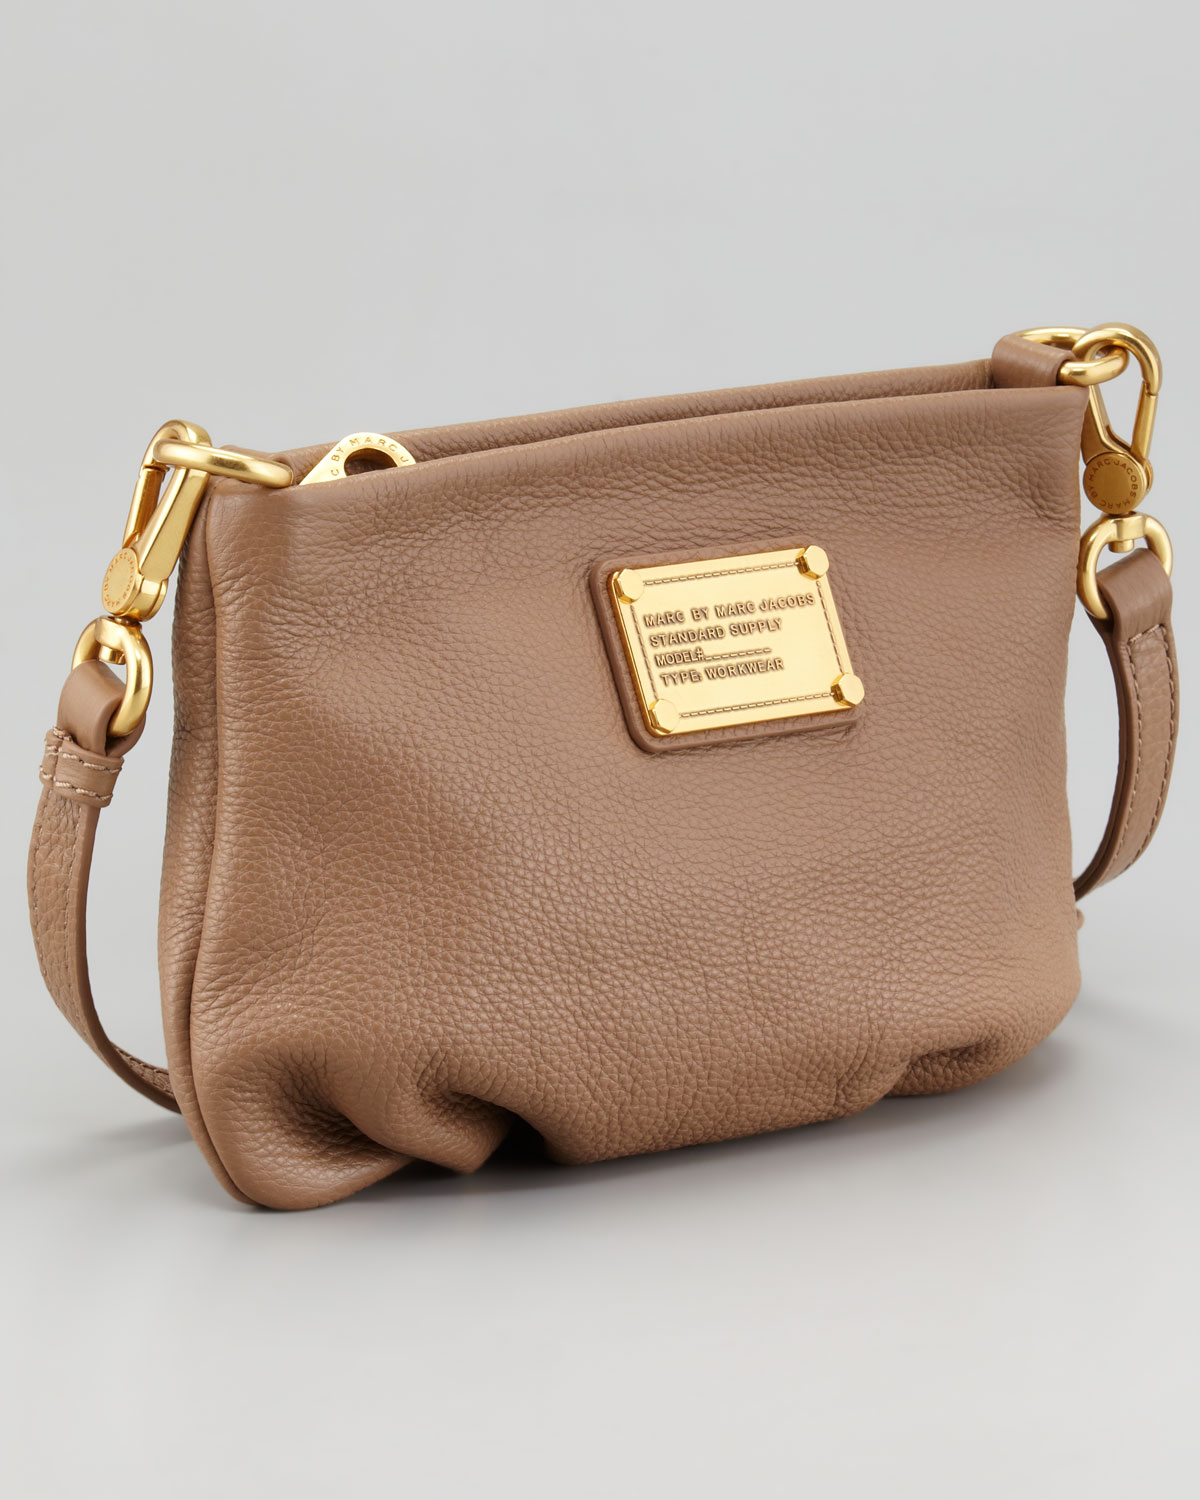 Lyst - Marc By Marc Jacobs Classic Q Percy Cross-body Bag in Brown